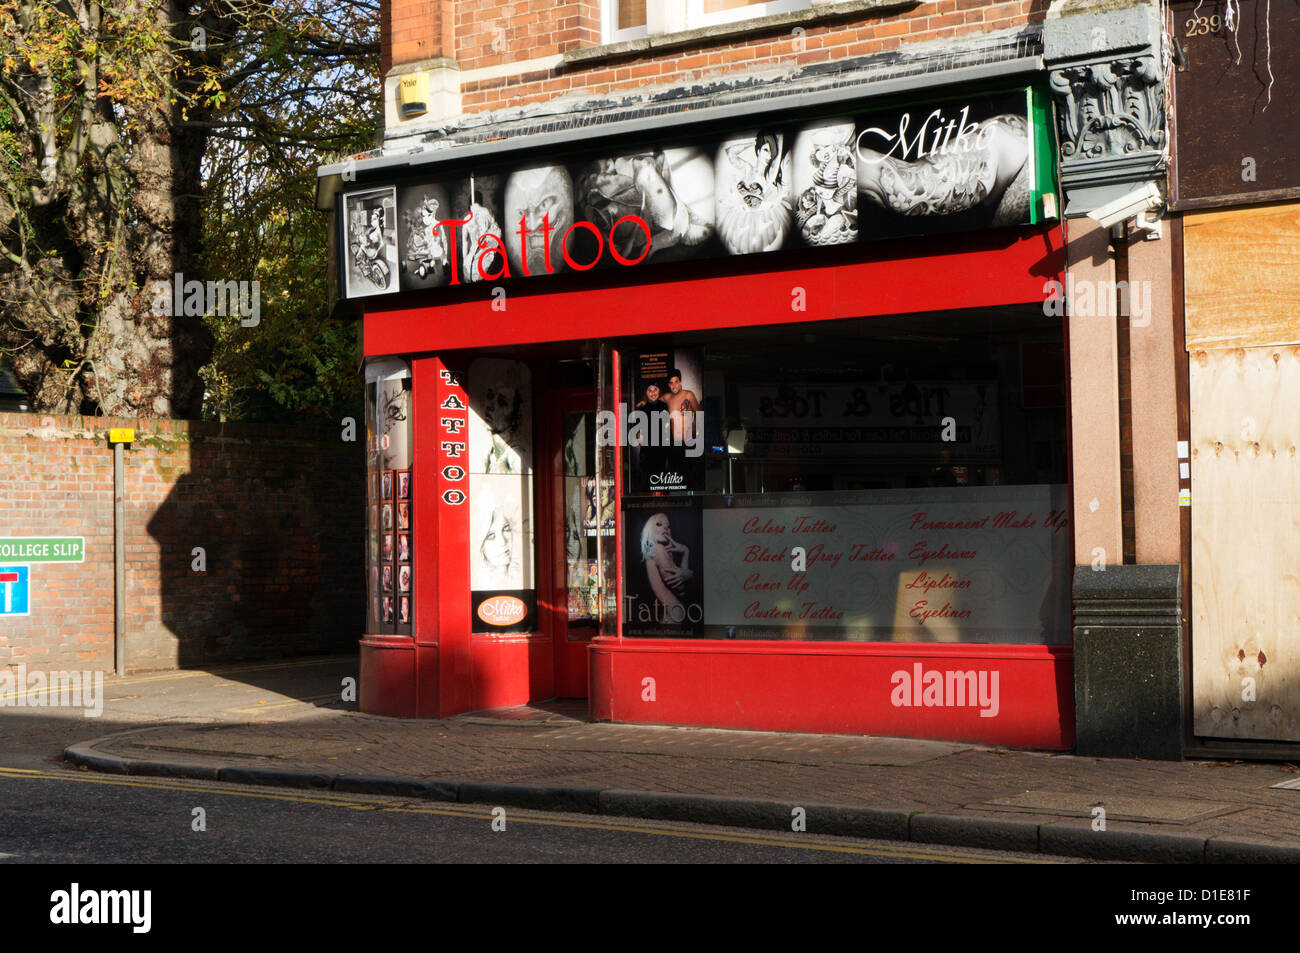 Mitko Tattoo Parlour in Bromley, Kent. Stock Photo